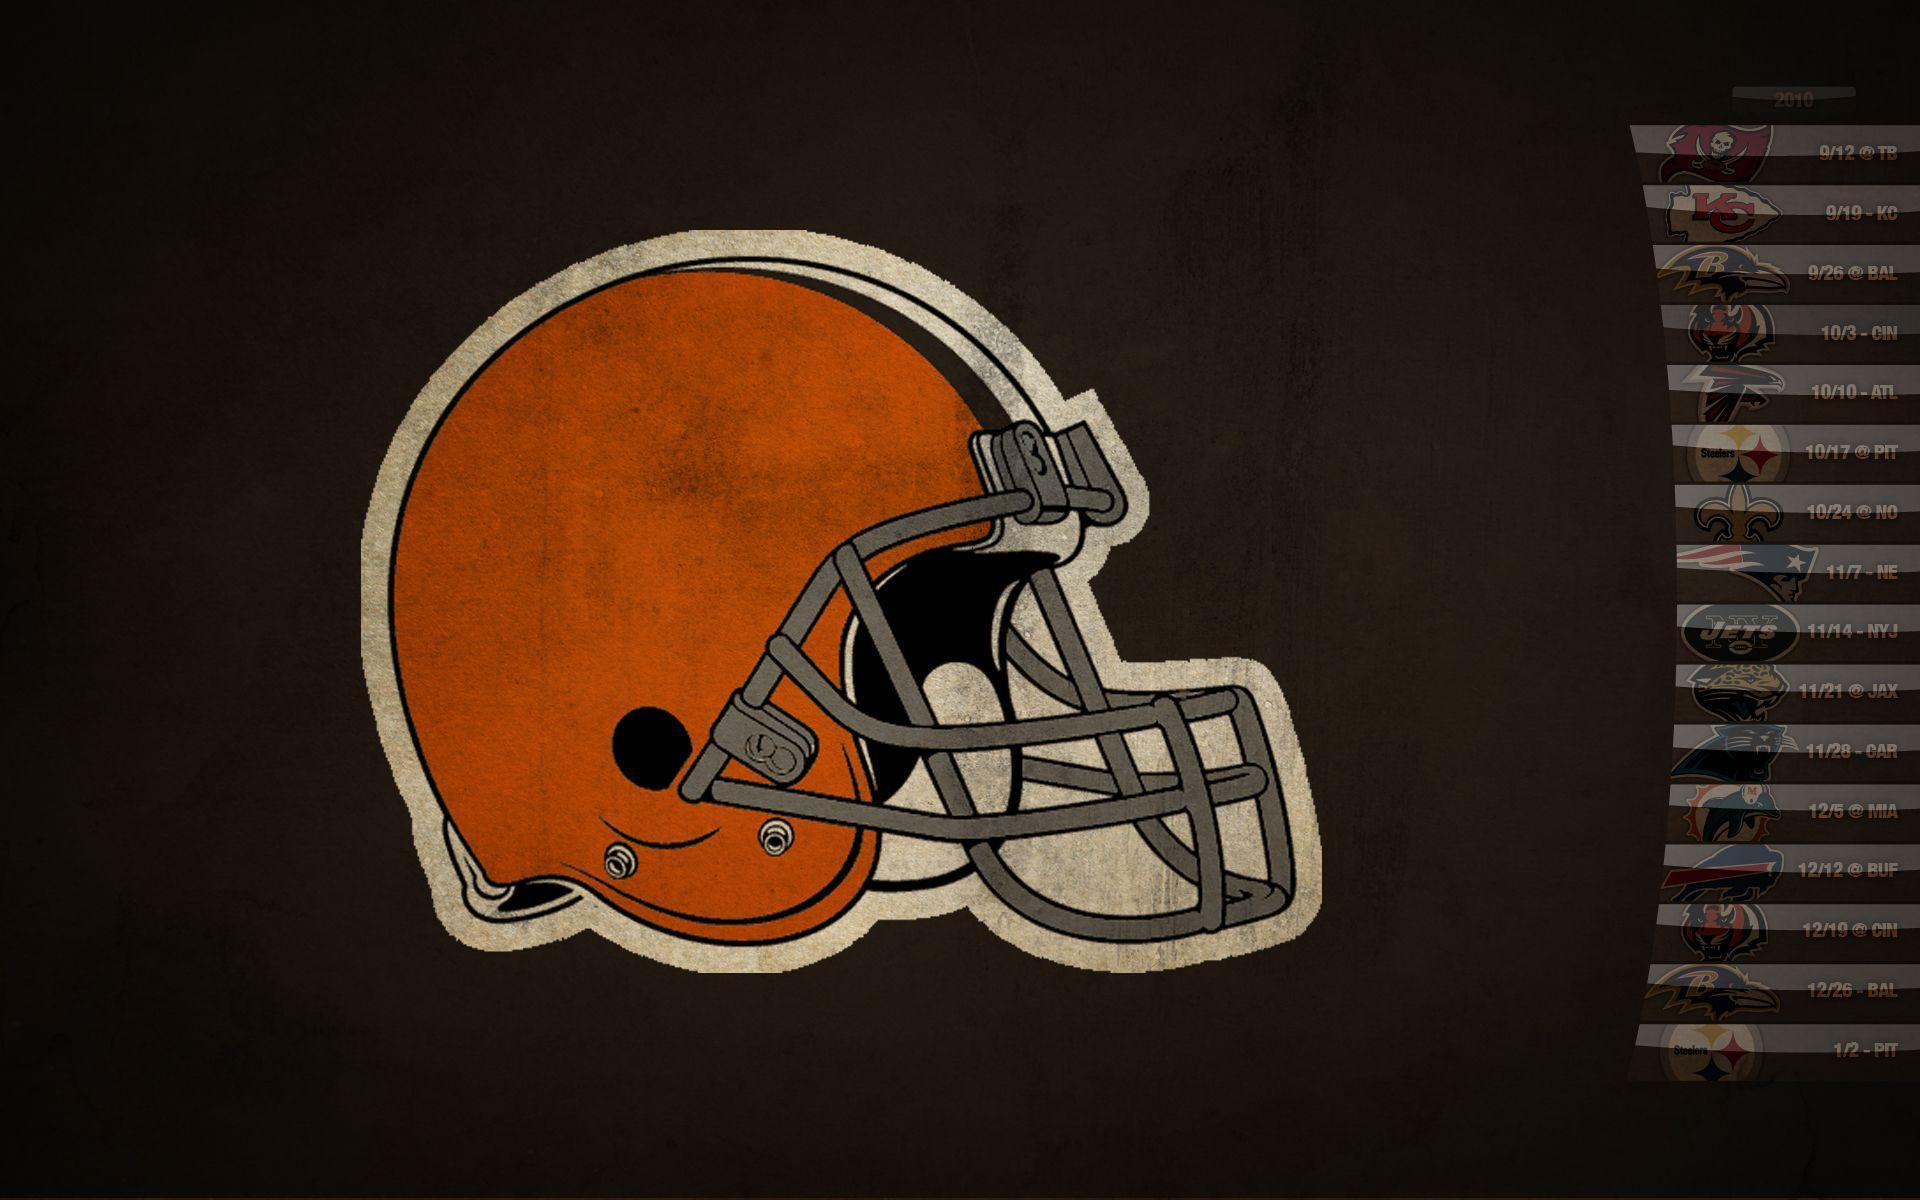 Cleveland Browns 2017 Wallpaper